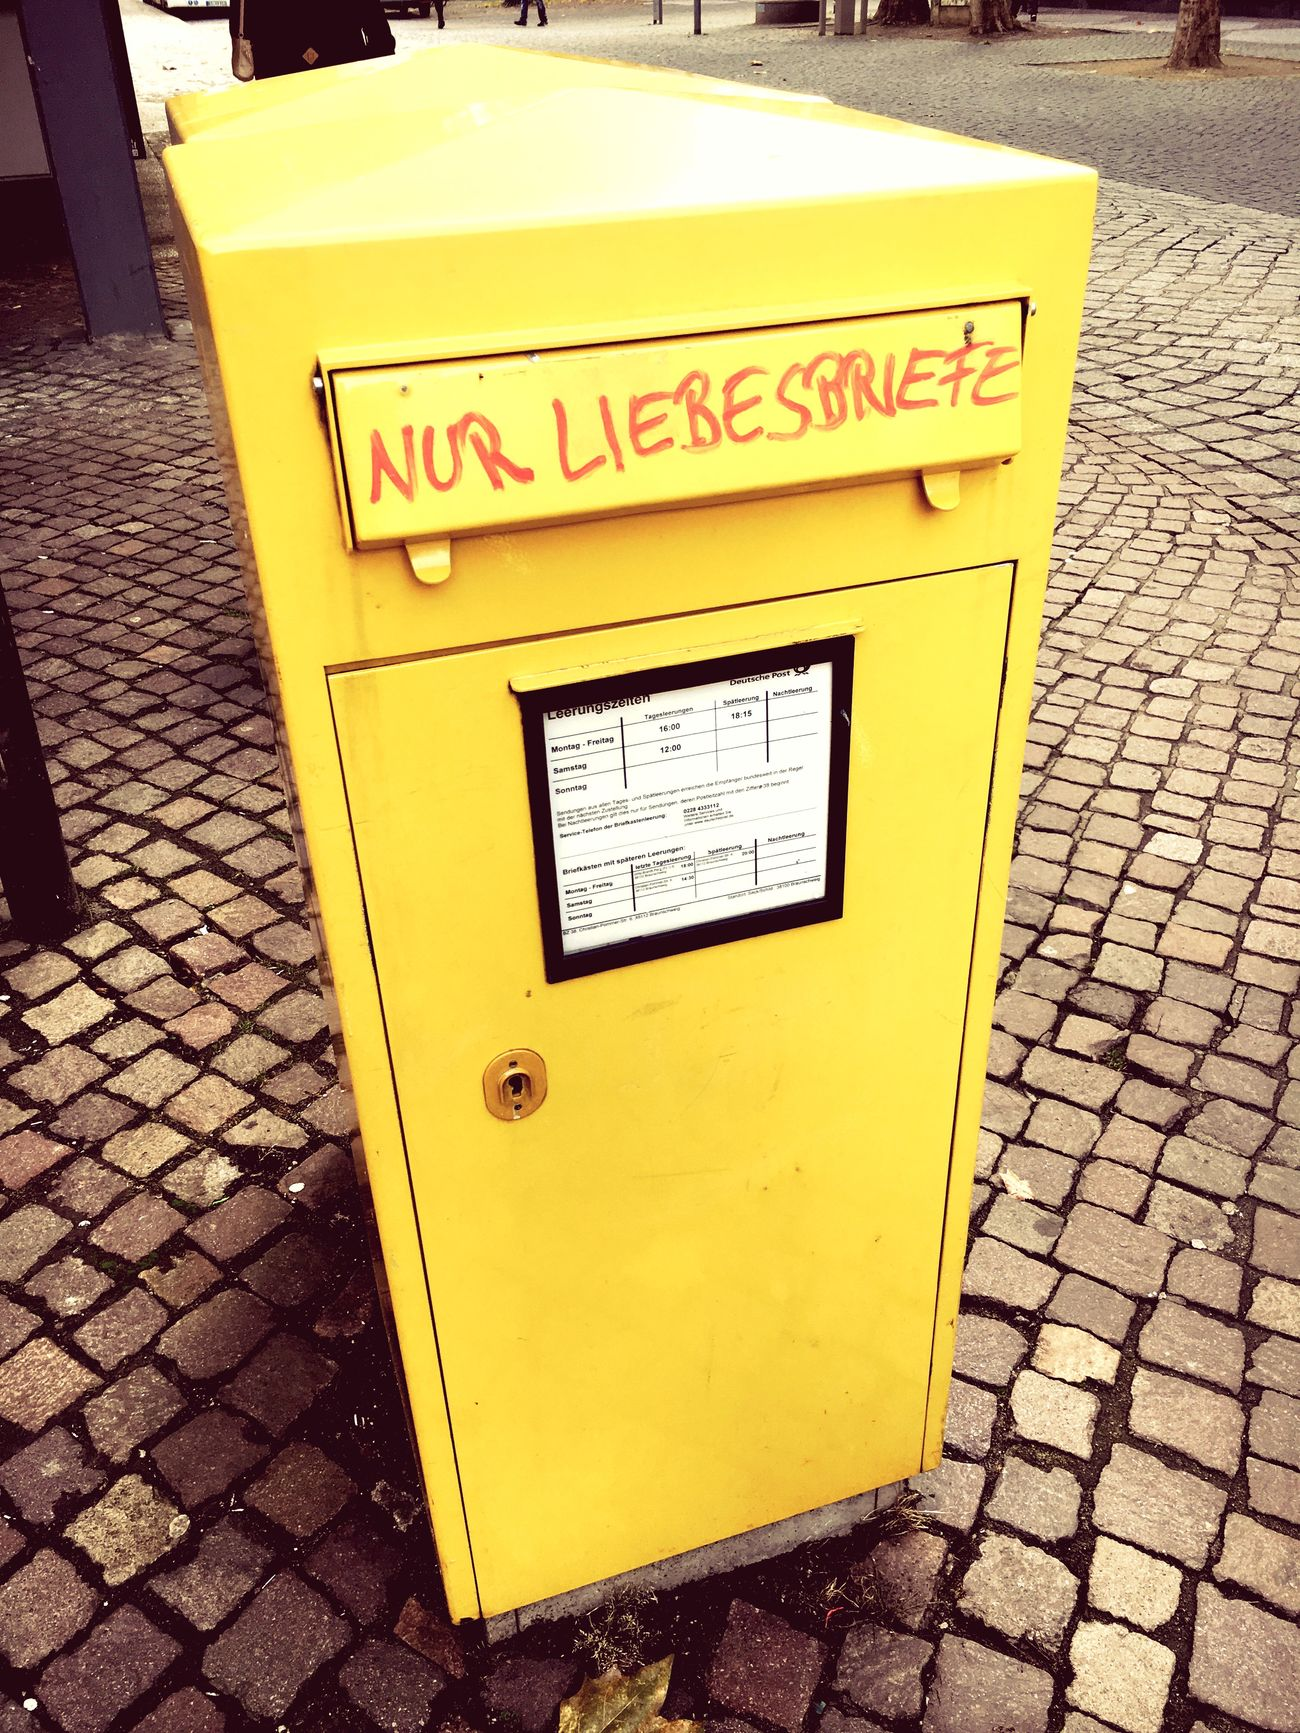 Mailbox only for loveletters 😁❤️👍🏼 Loveletters Only Mailbox Loveletters Justlife Postkasten Liebesbriefe Tagging Graffiti Typo Around The World Typo LetsDoIt Braunschweig Citylife Streetart/graffiti